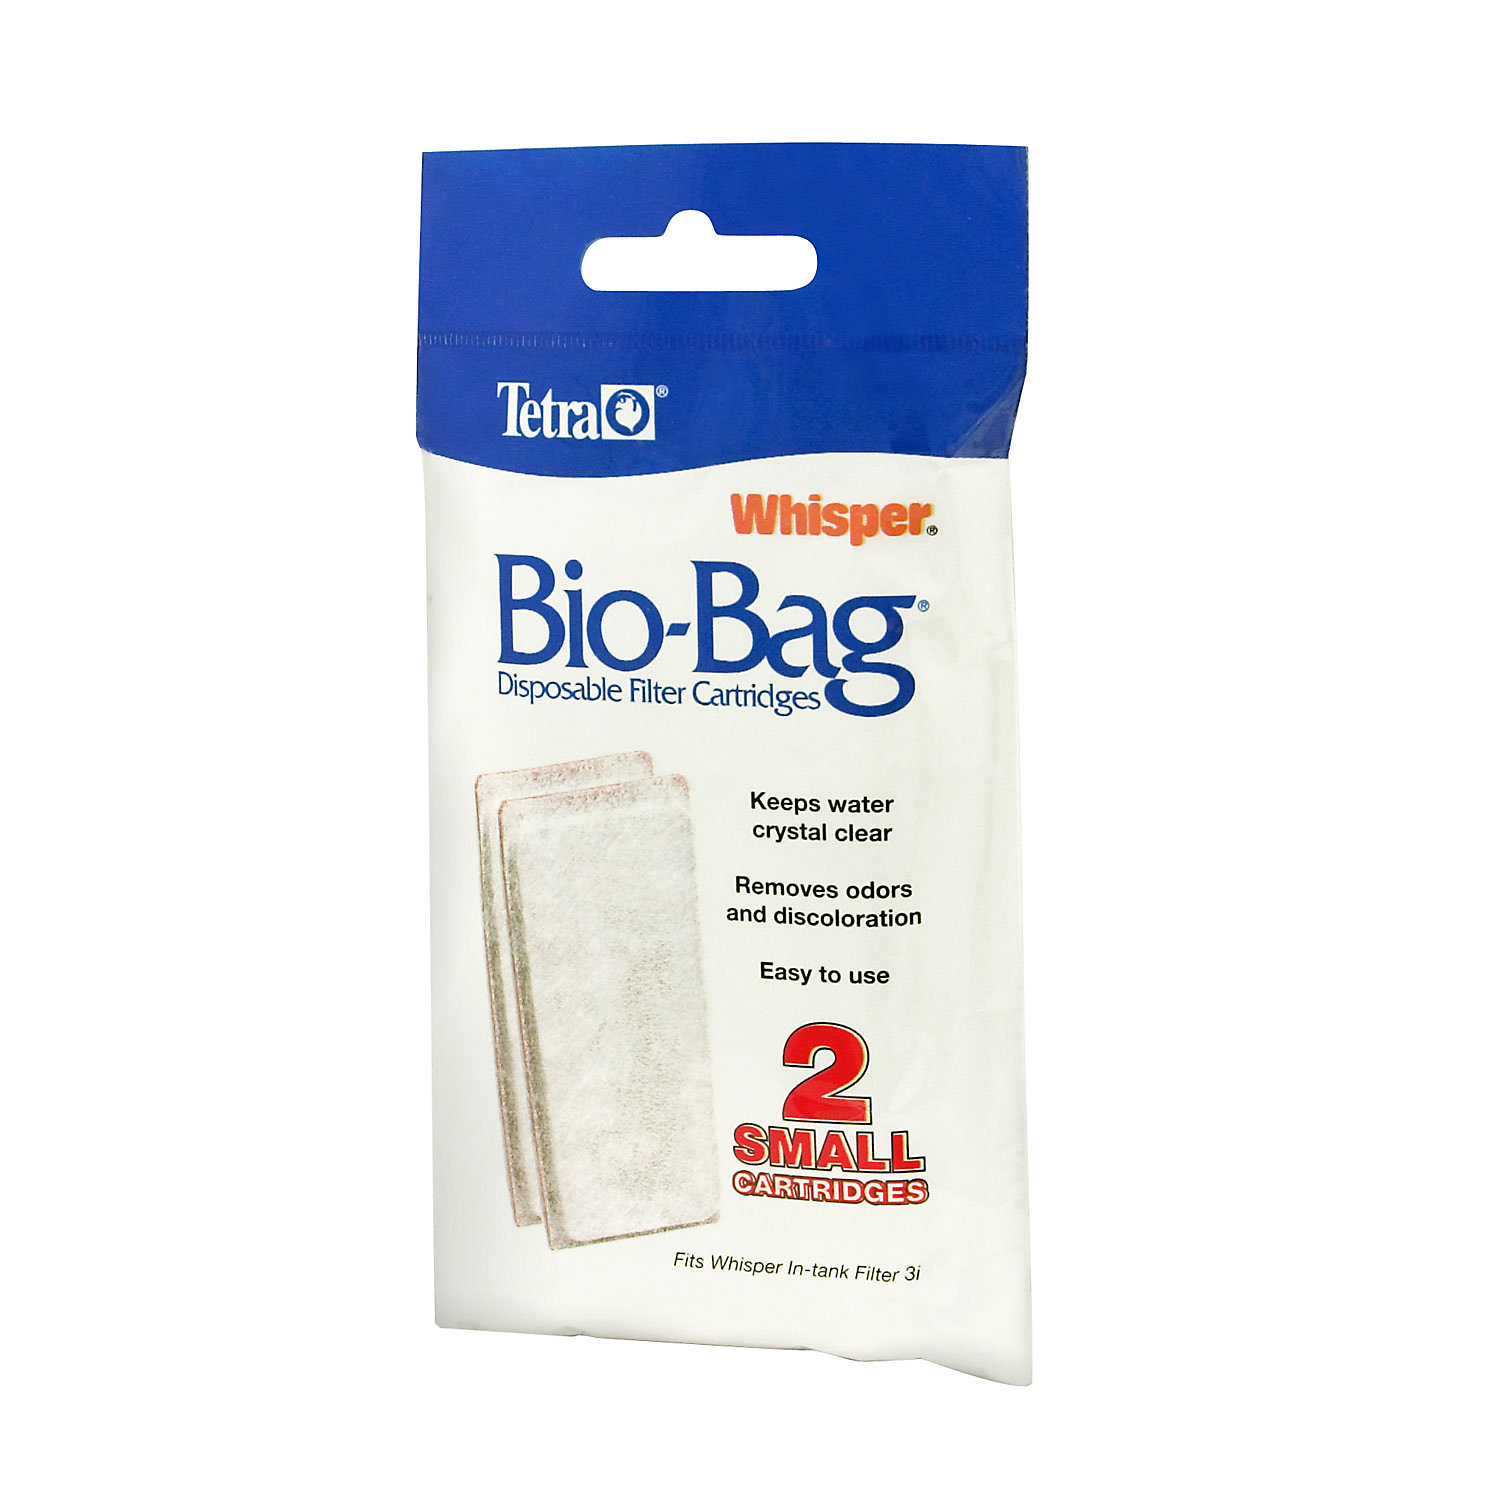 Tetra Whisper Bio Bag Disposable Filter Cartridges Small Pack Of 2 Cartridges